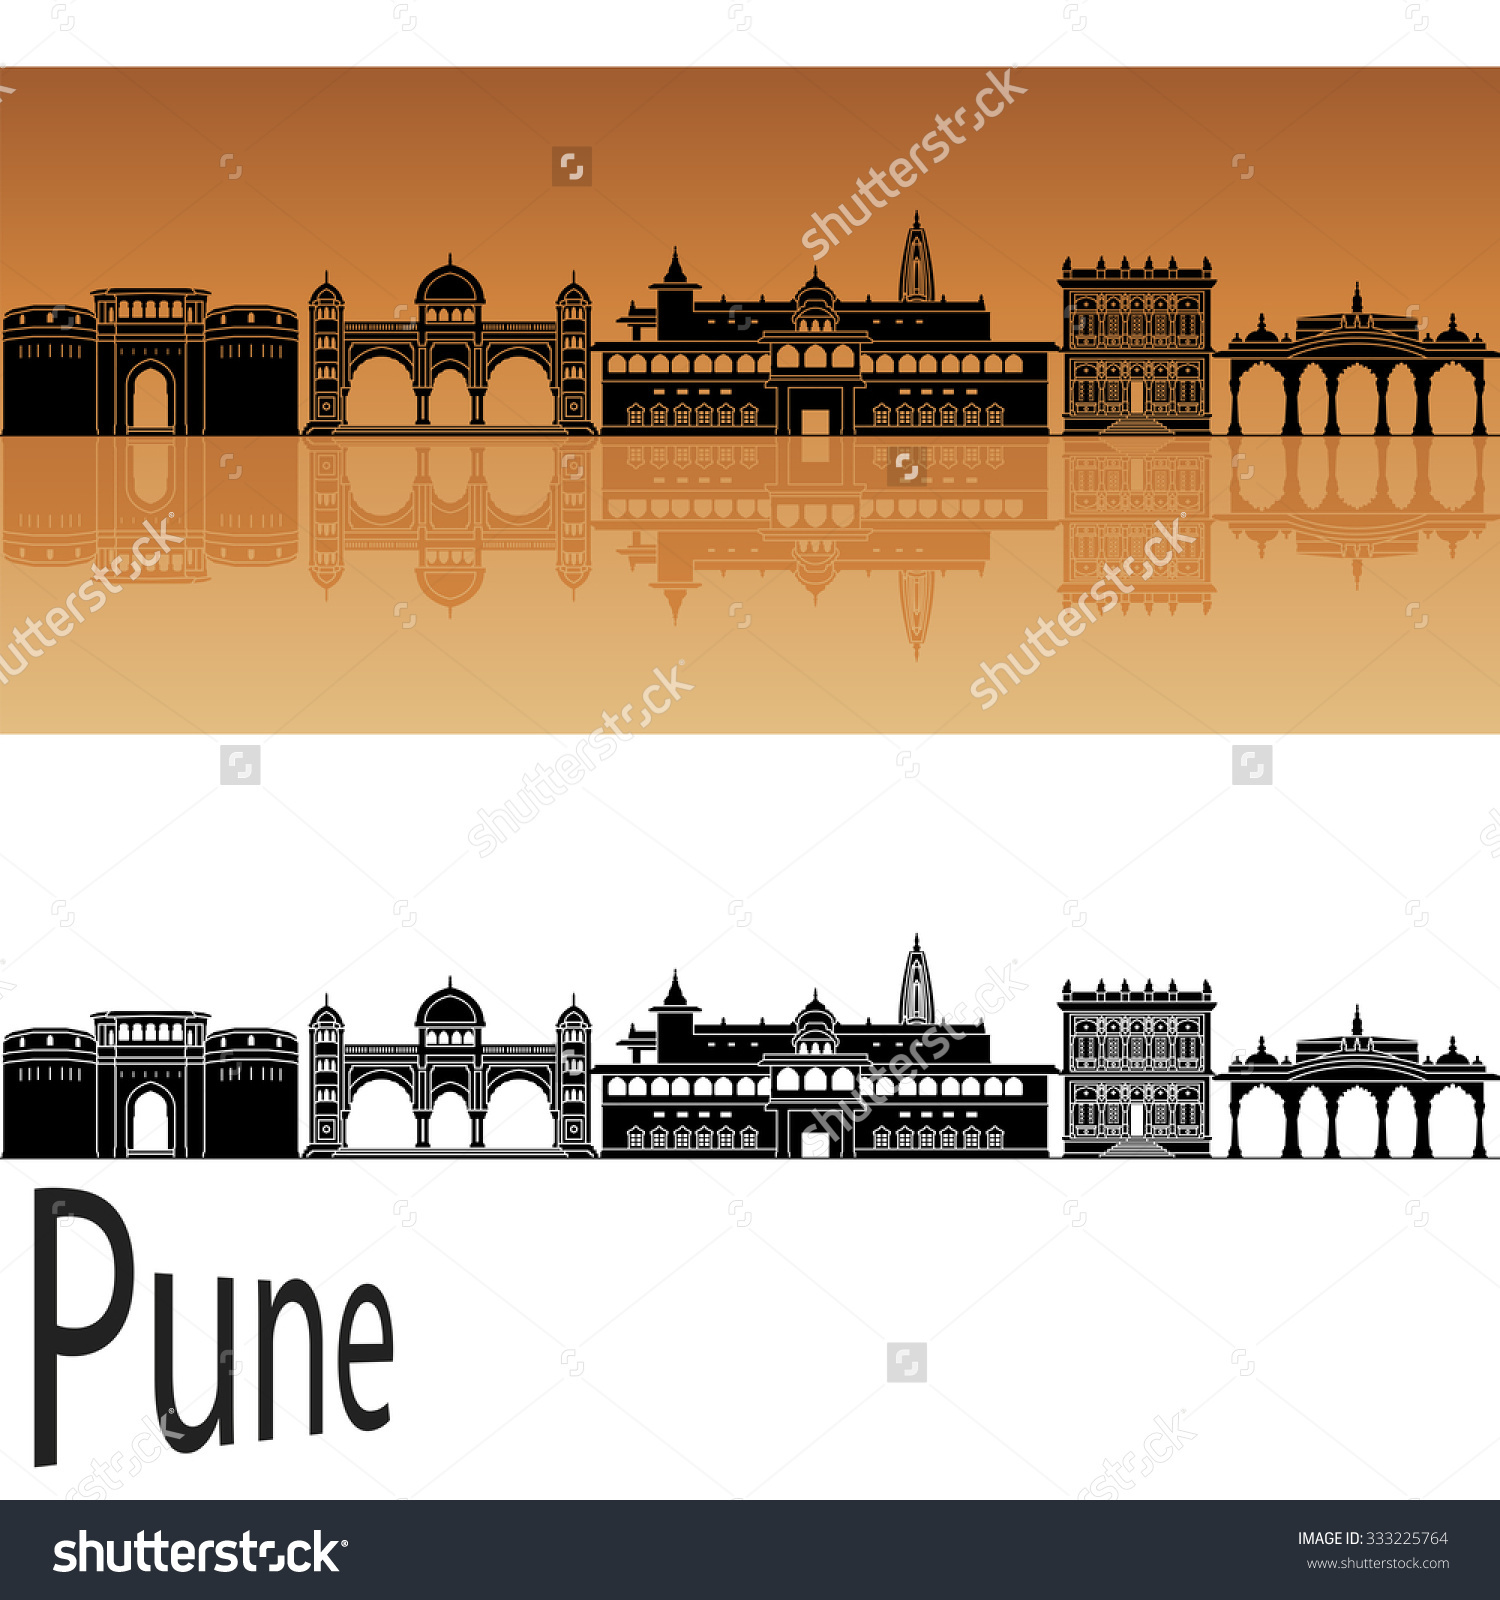 Pune Skyline Orange Background Editable Vector Stock Vector.